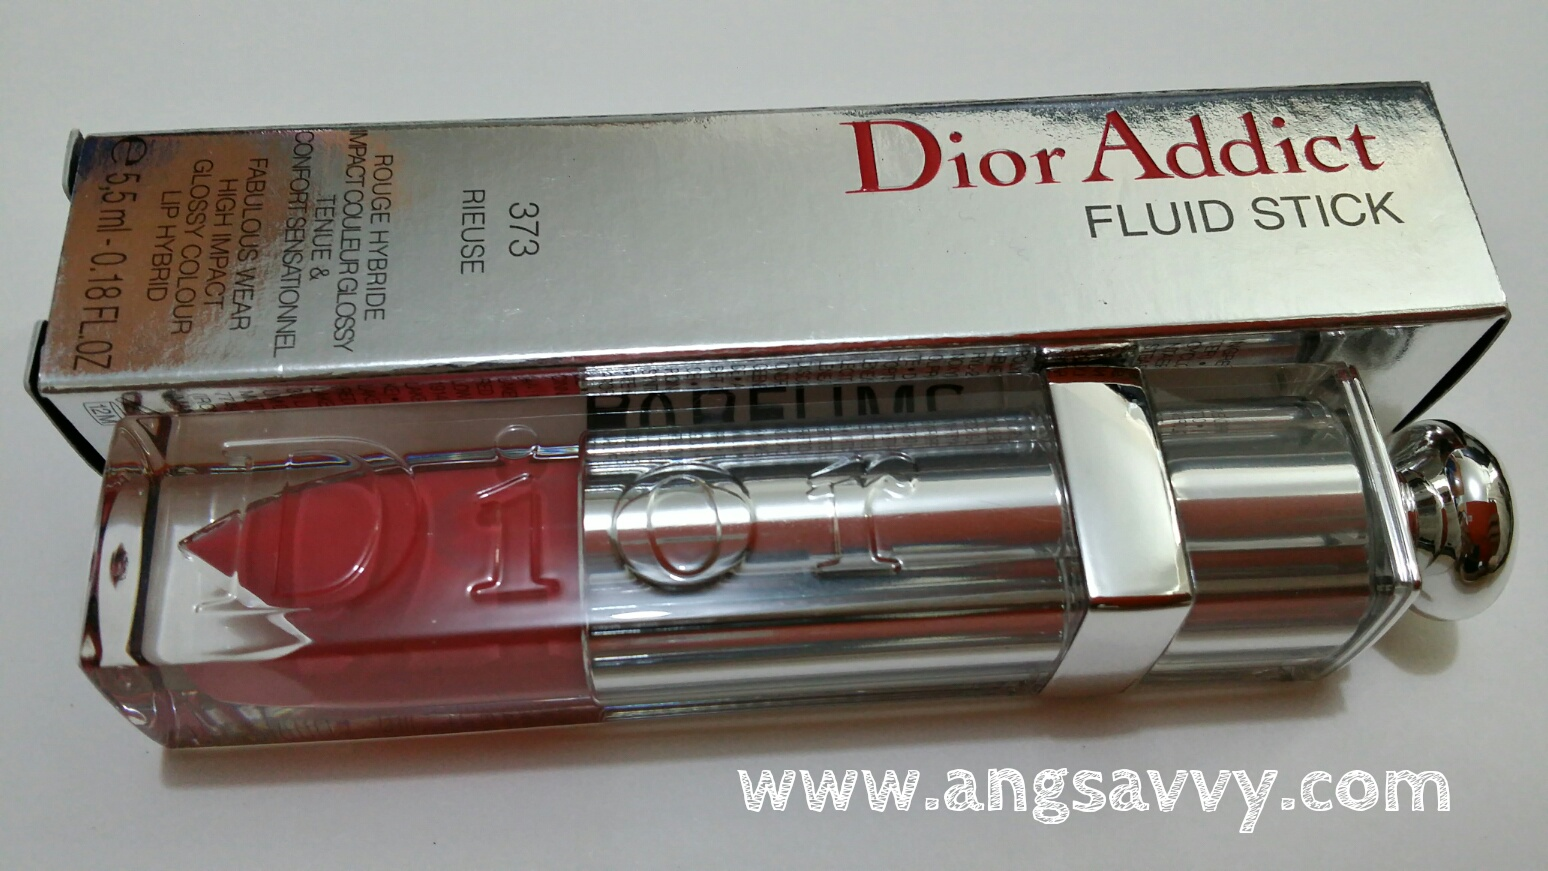 dior, addict, fluid stick, 373, rieuse